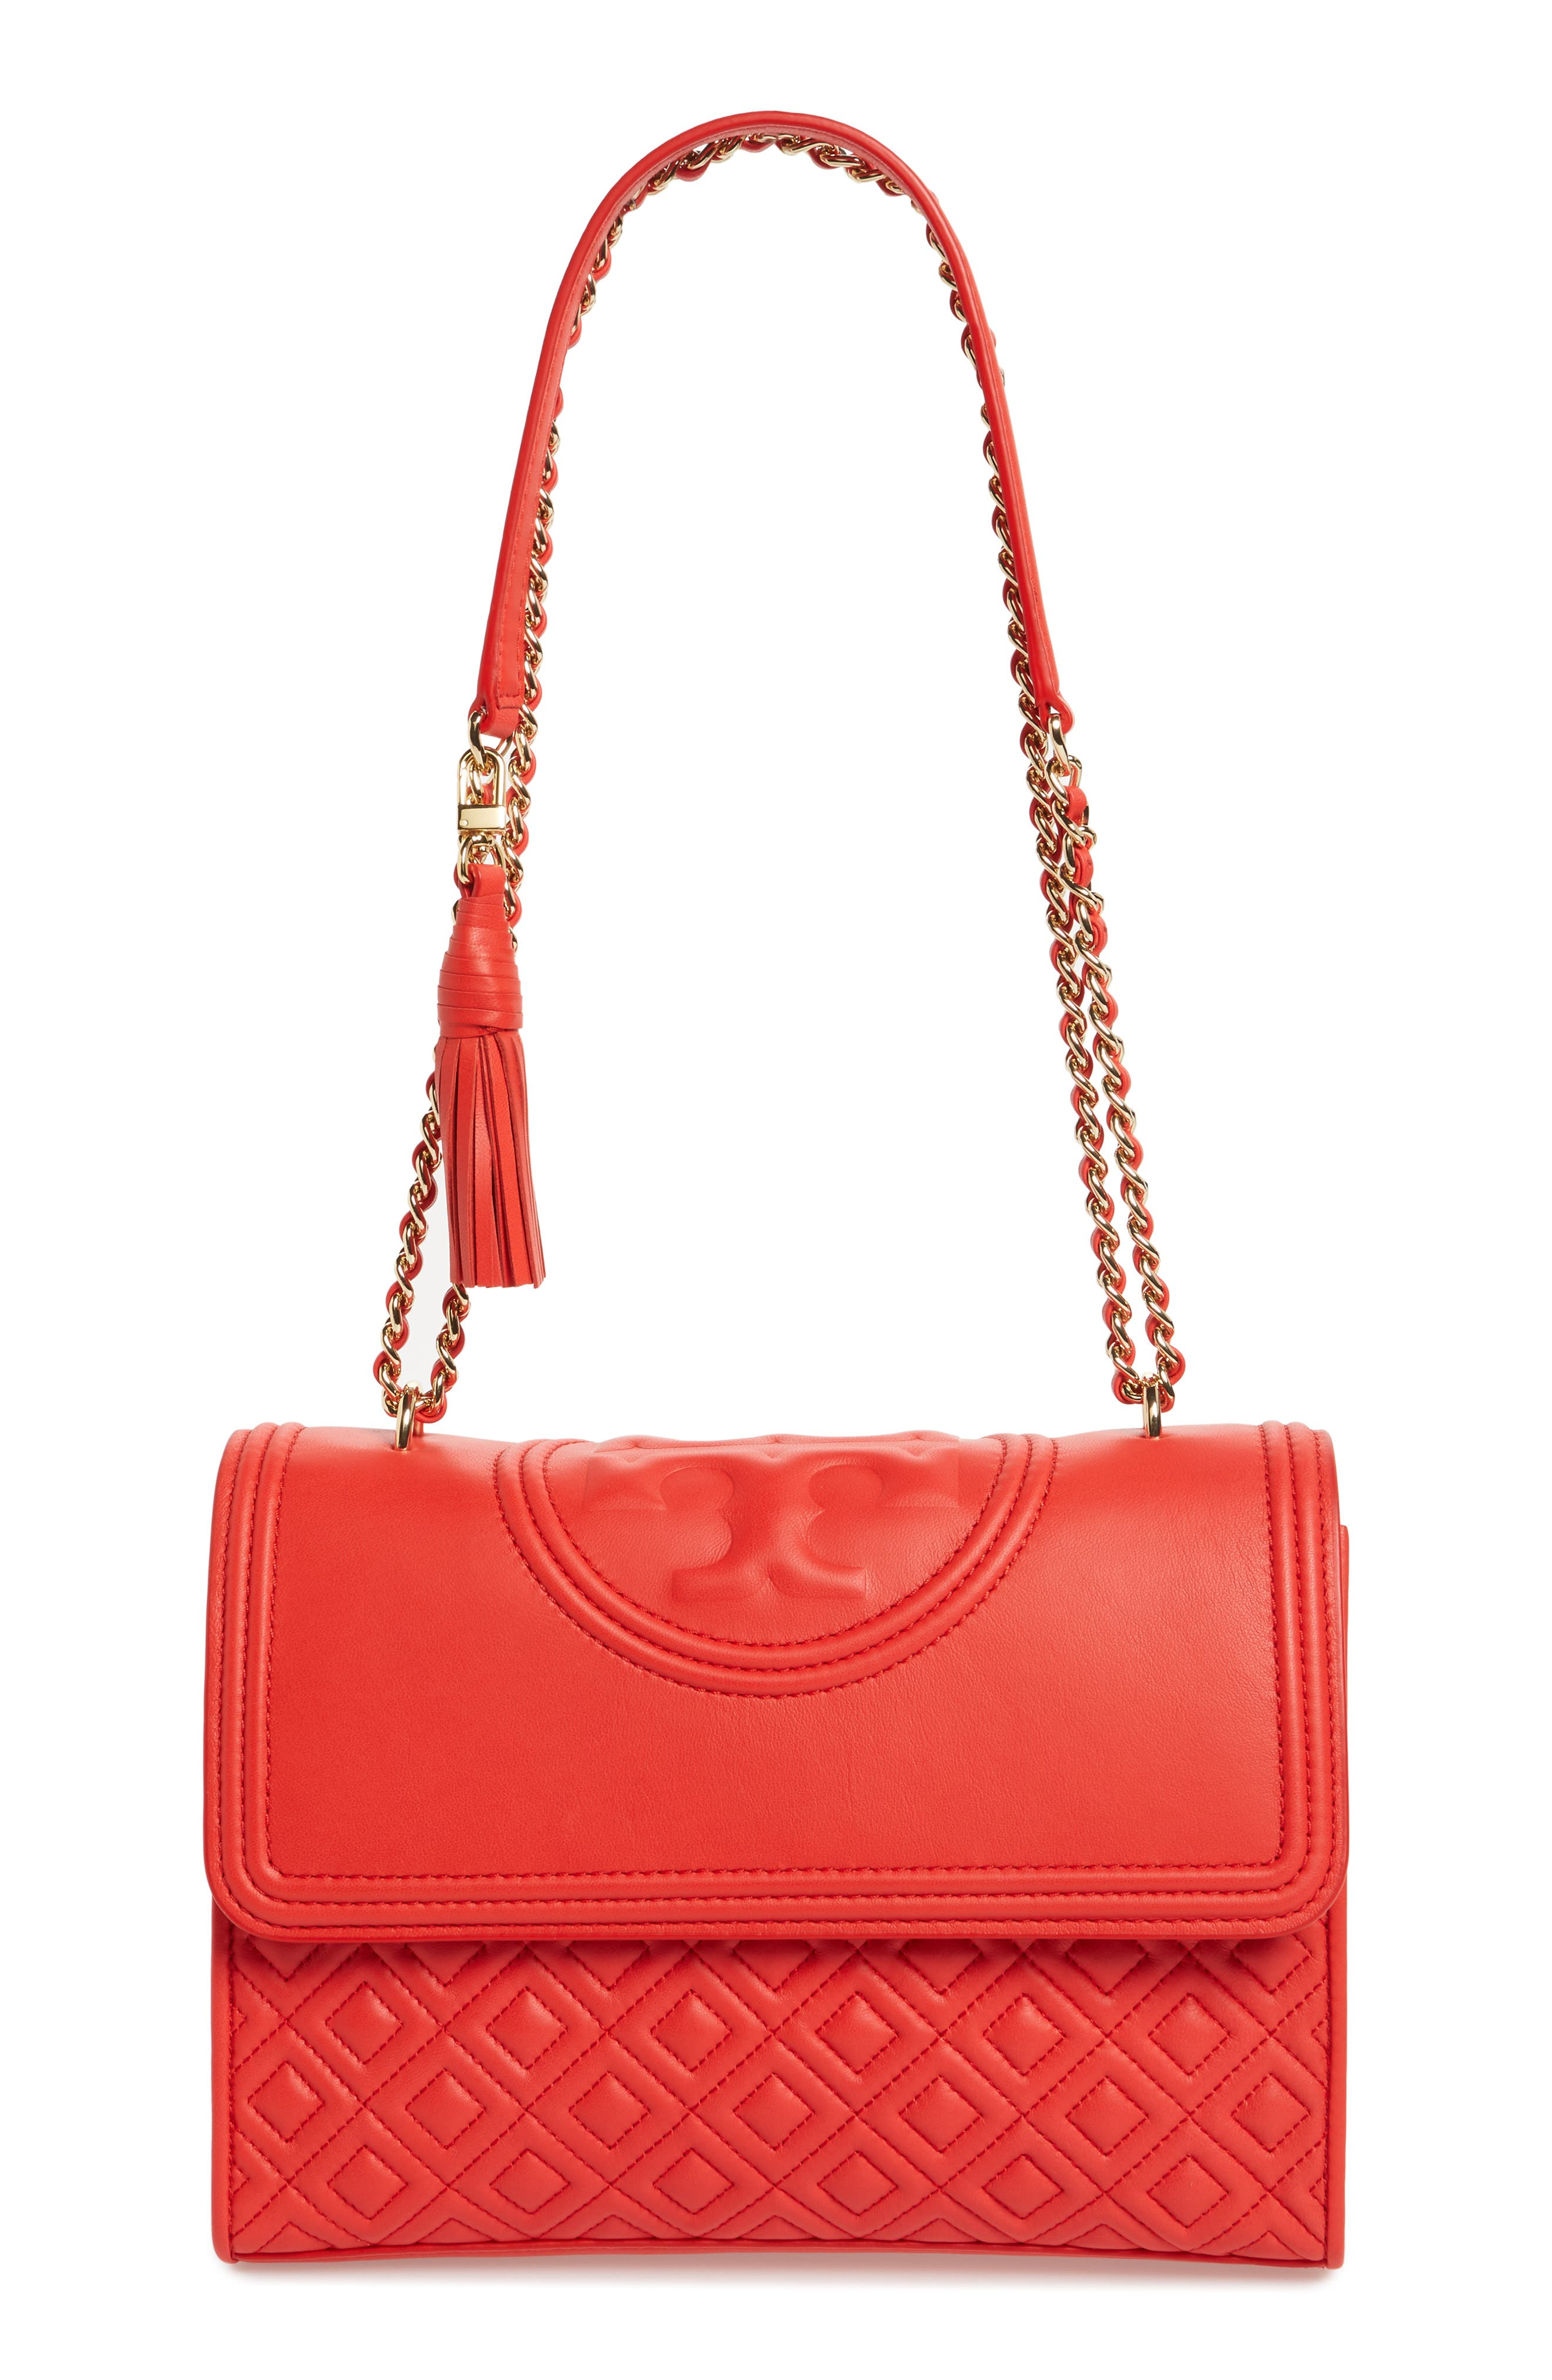 Tory Burch 'Fleming' Convertible Shoulder Bag